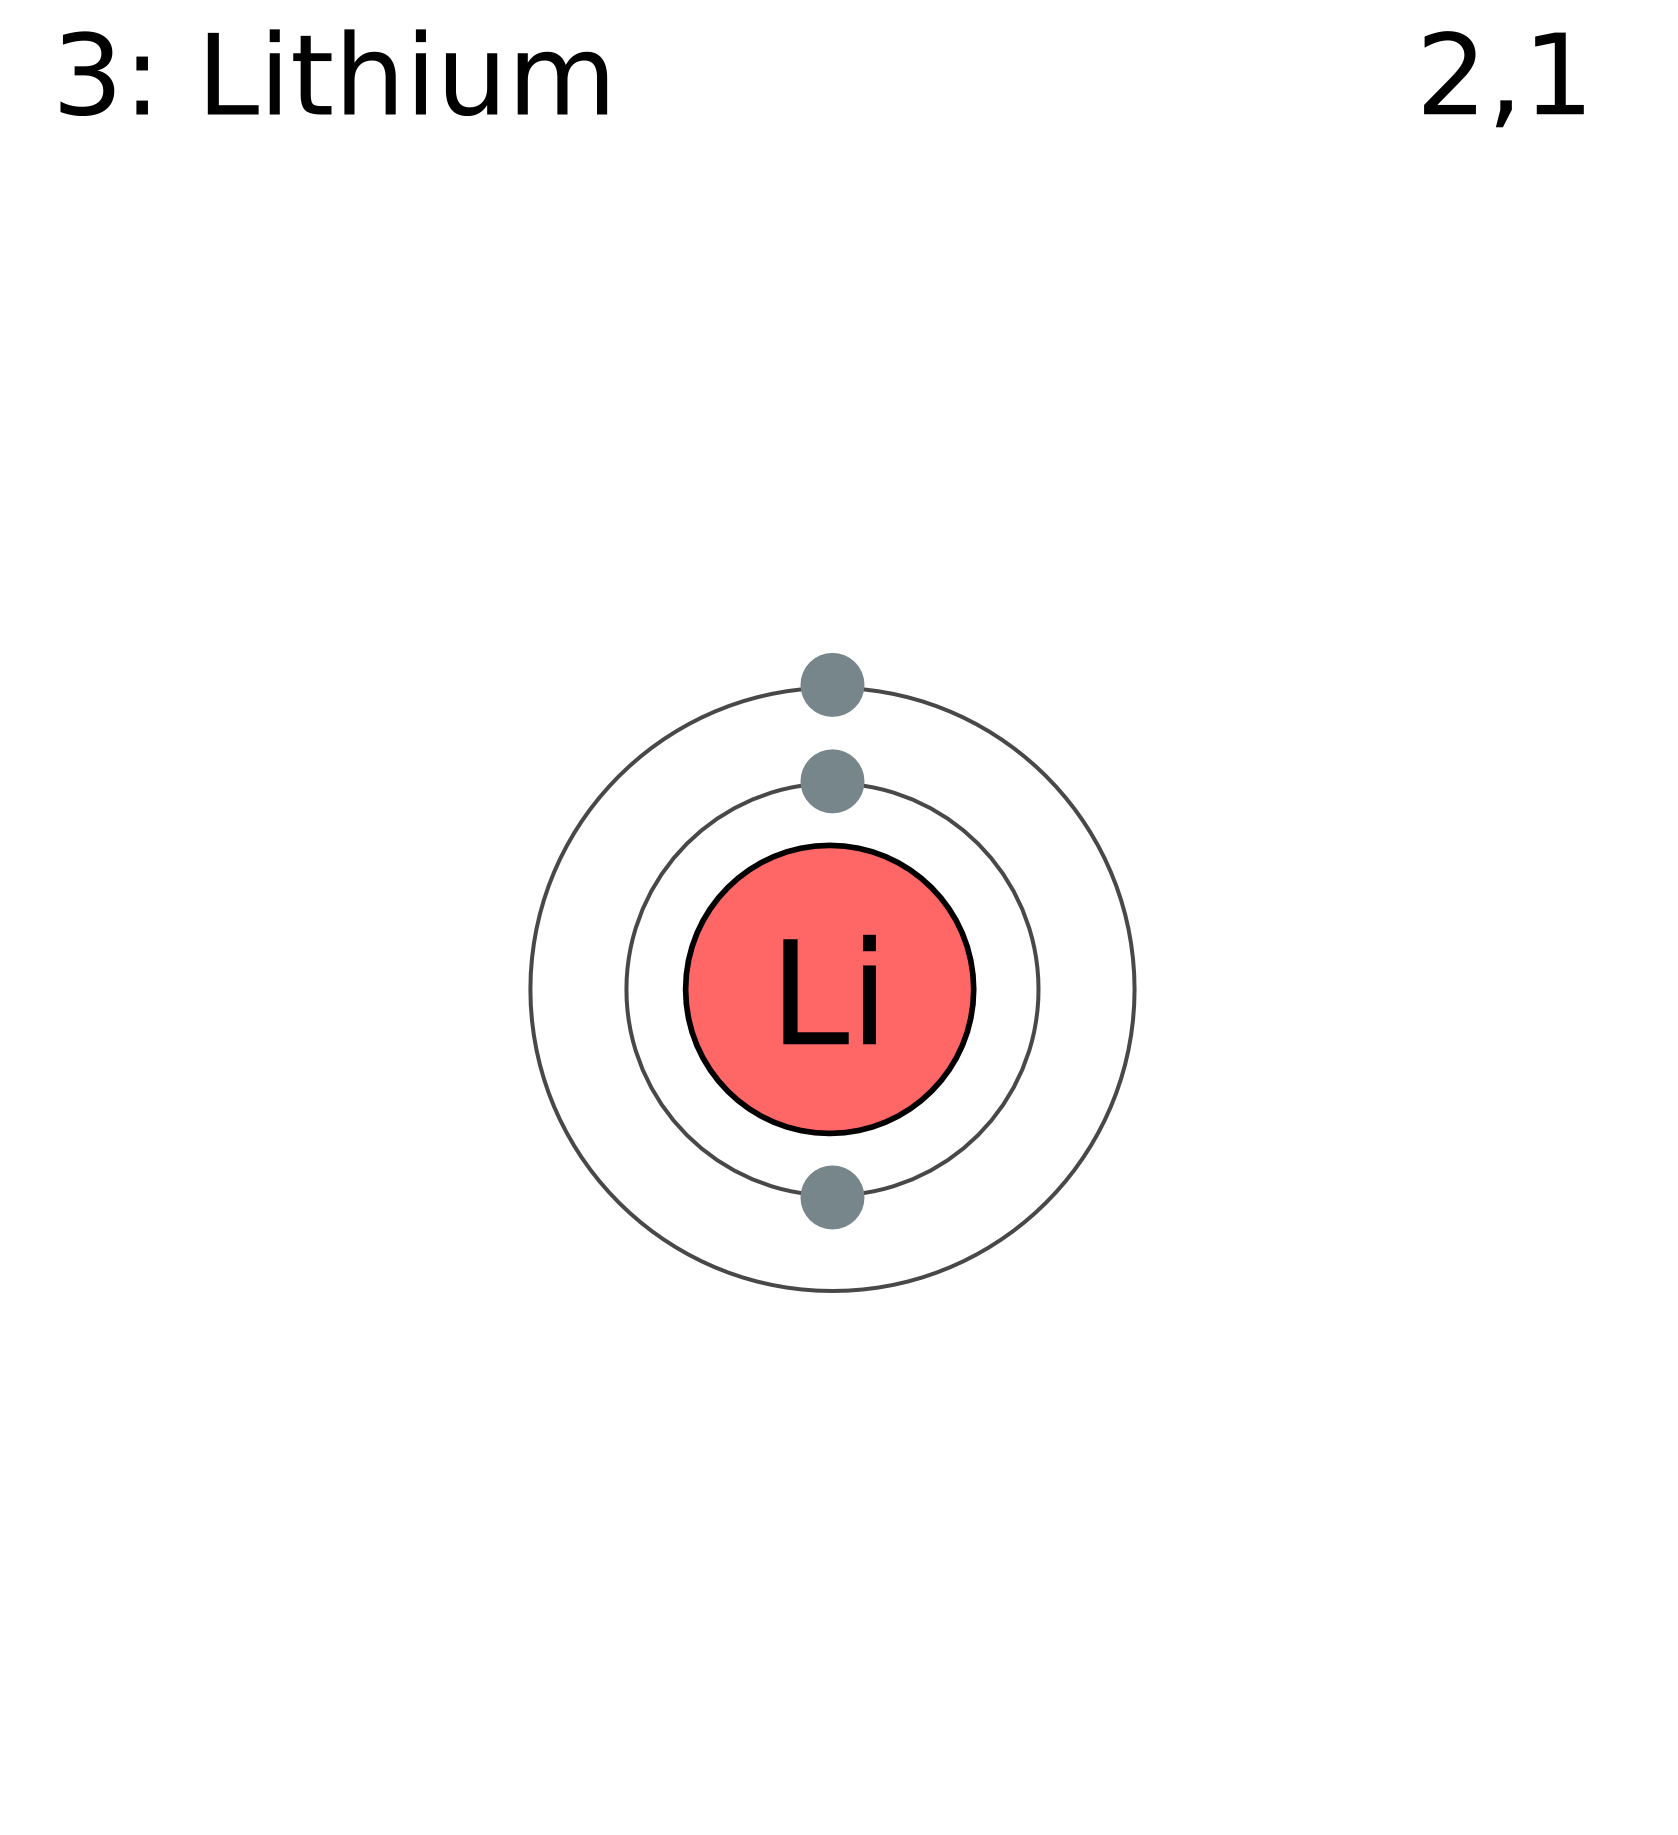 File:Electron_shell_003_lithium on File Periodic Table